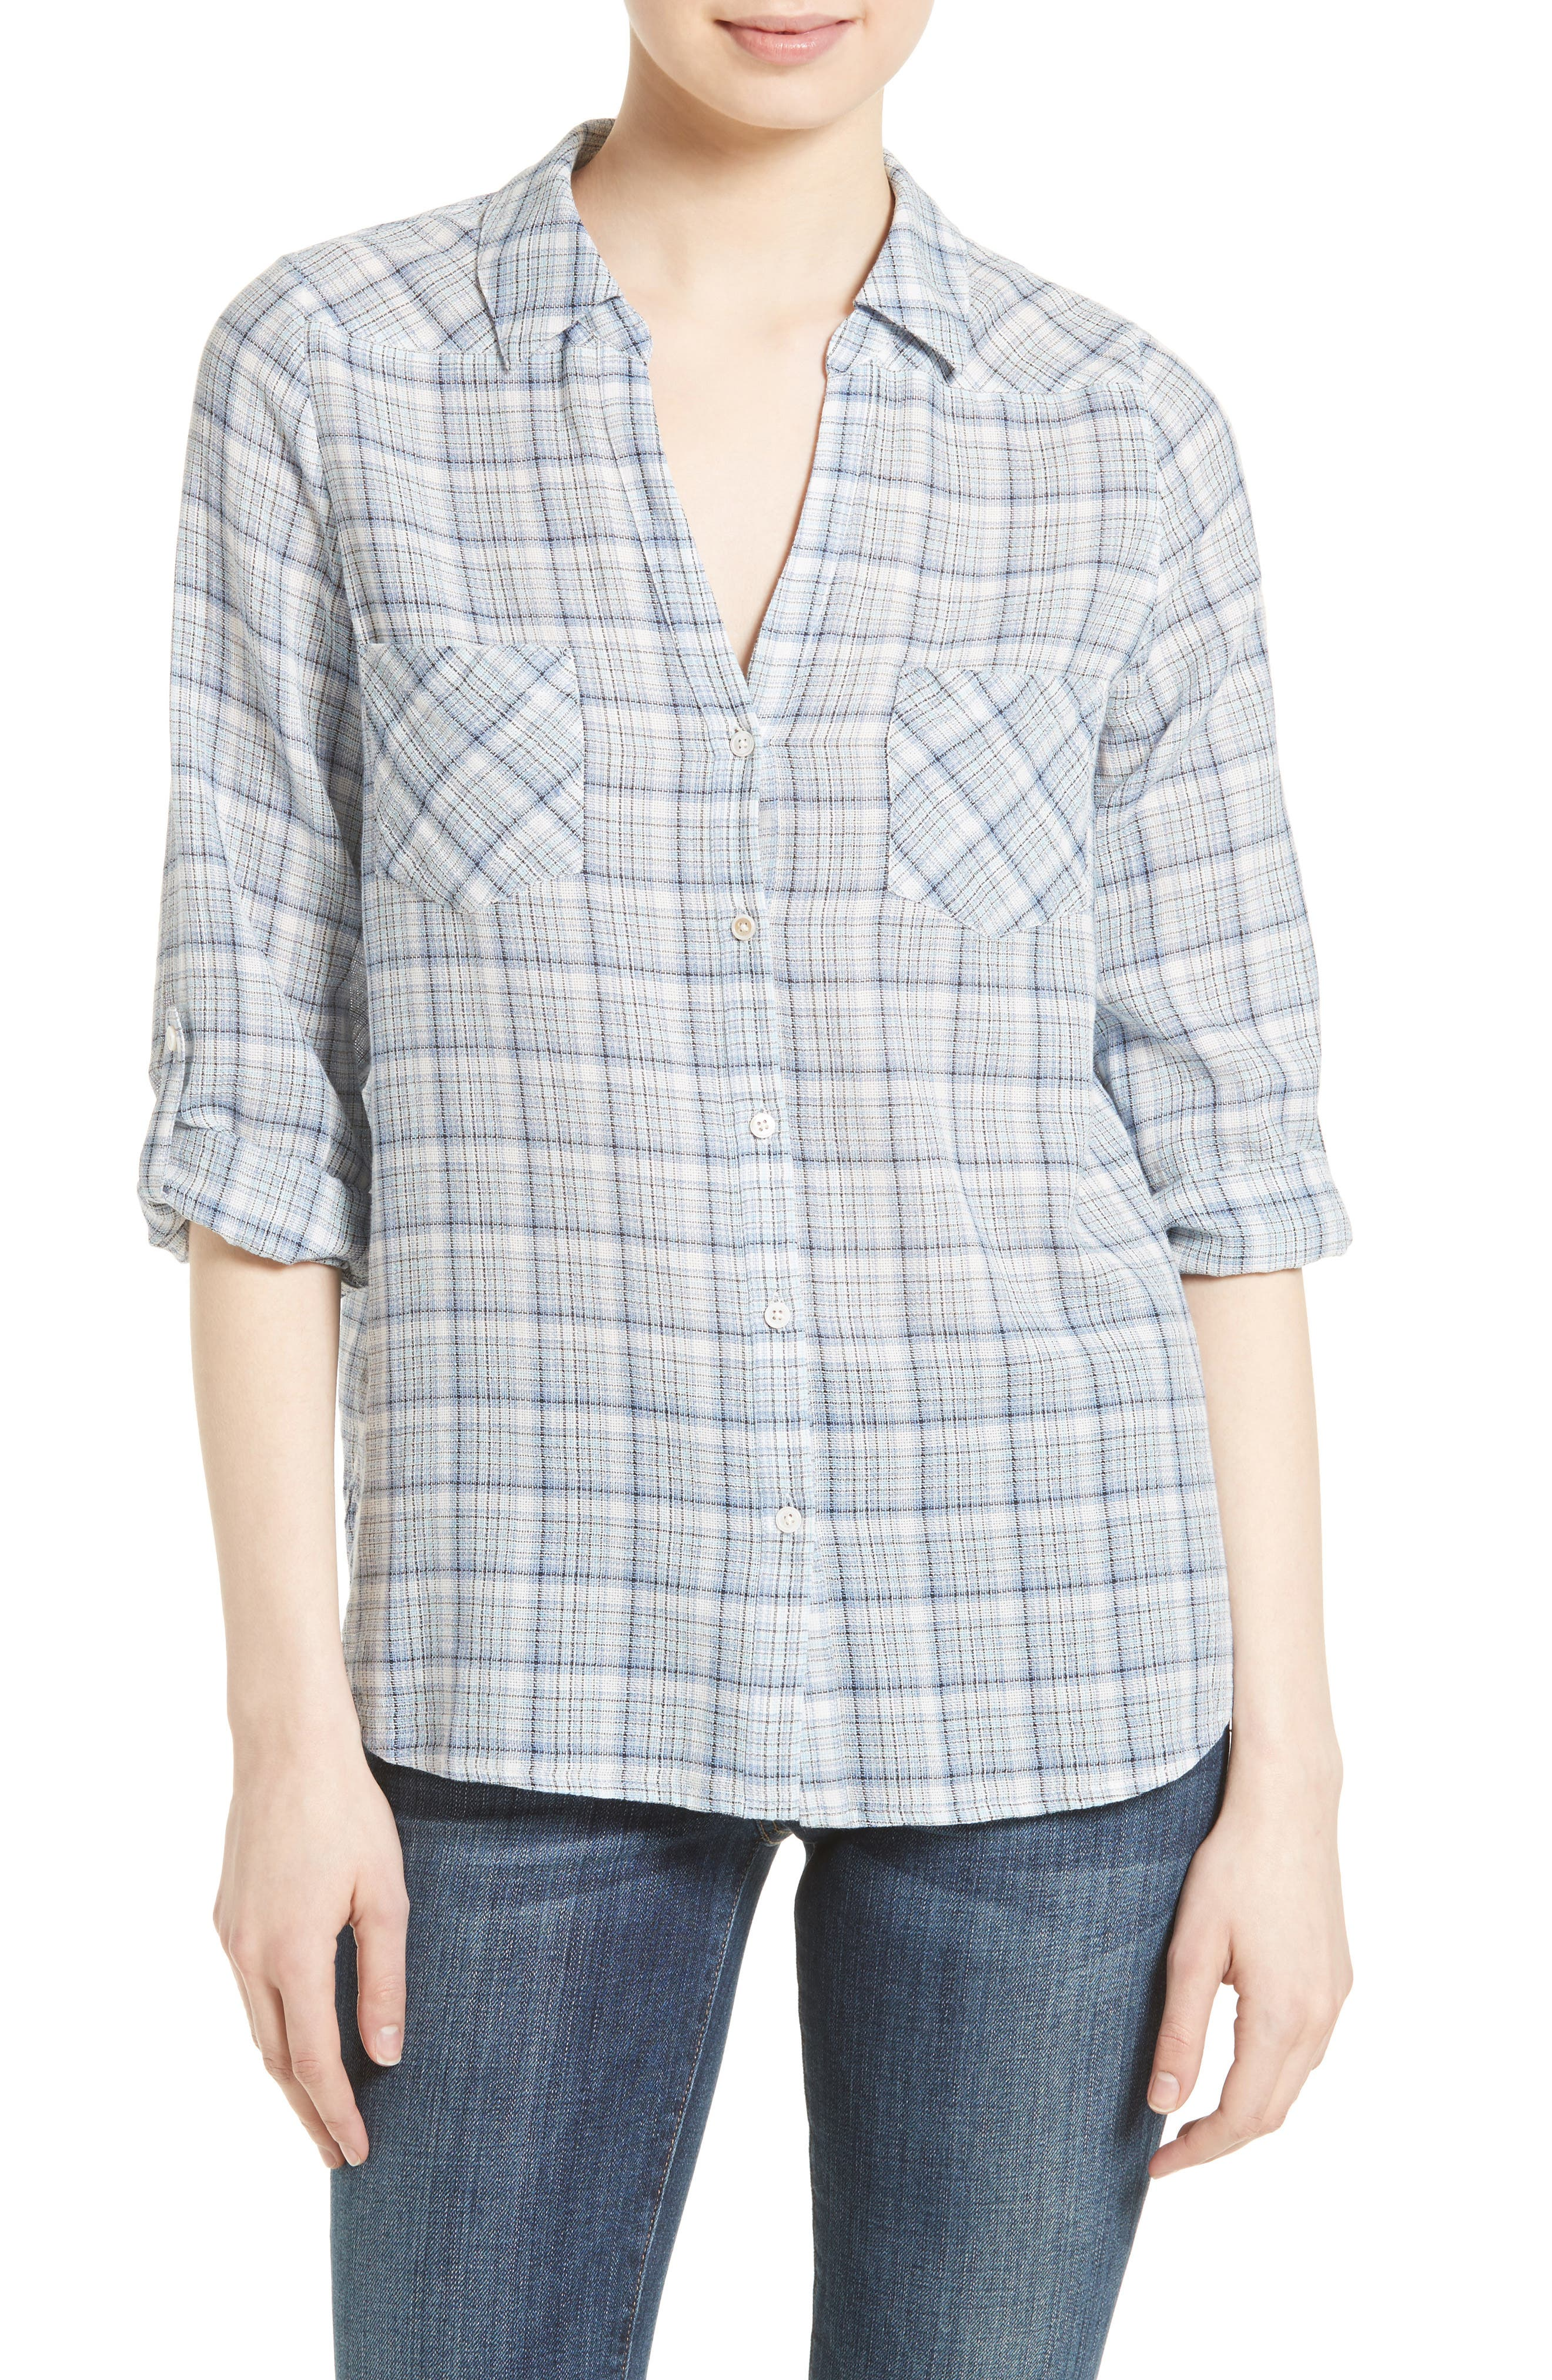 Joie Blas Plaid Shirt